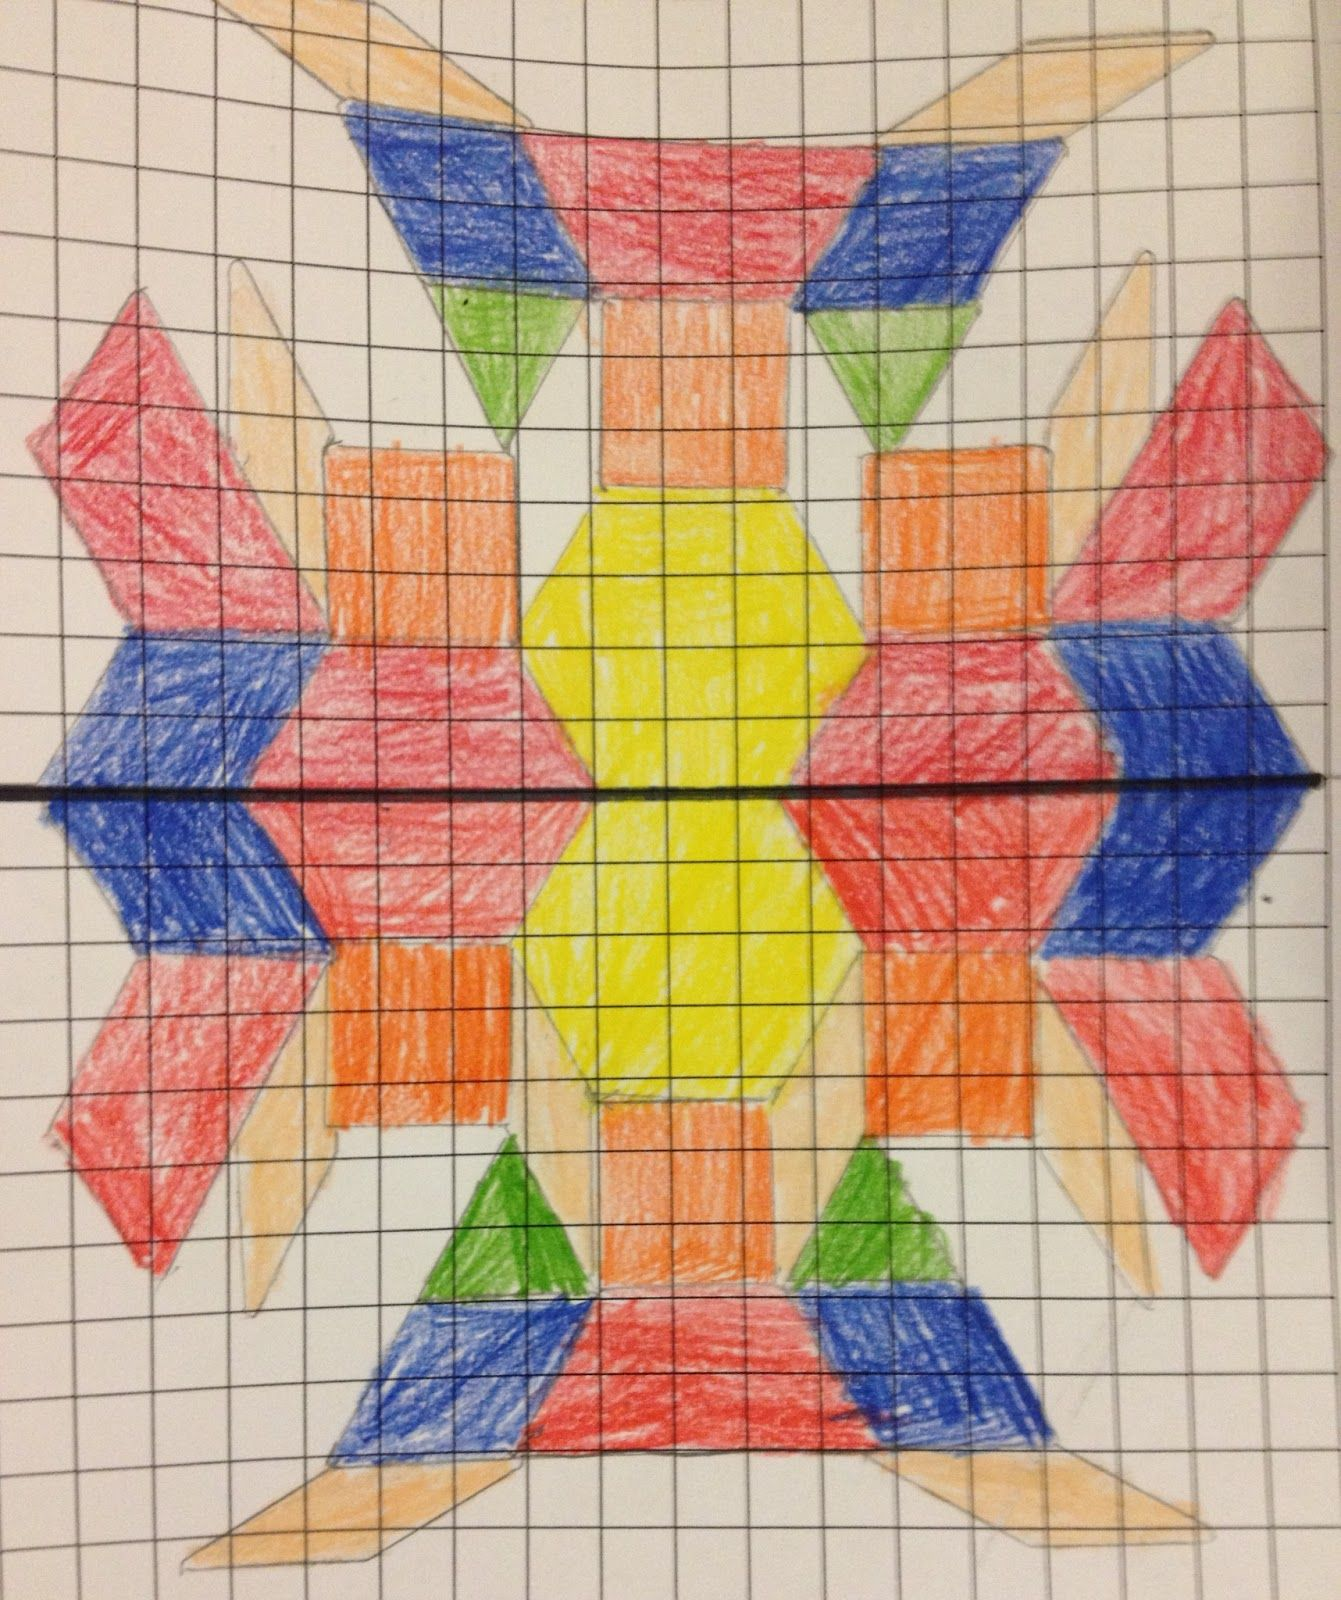 I Gave The Children Some Grid Paper And Pattern Blocks